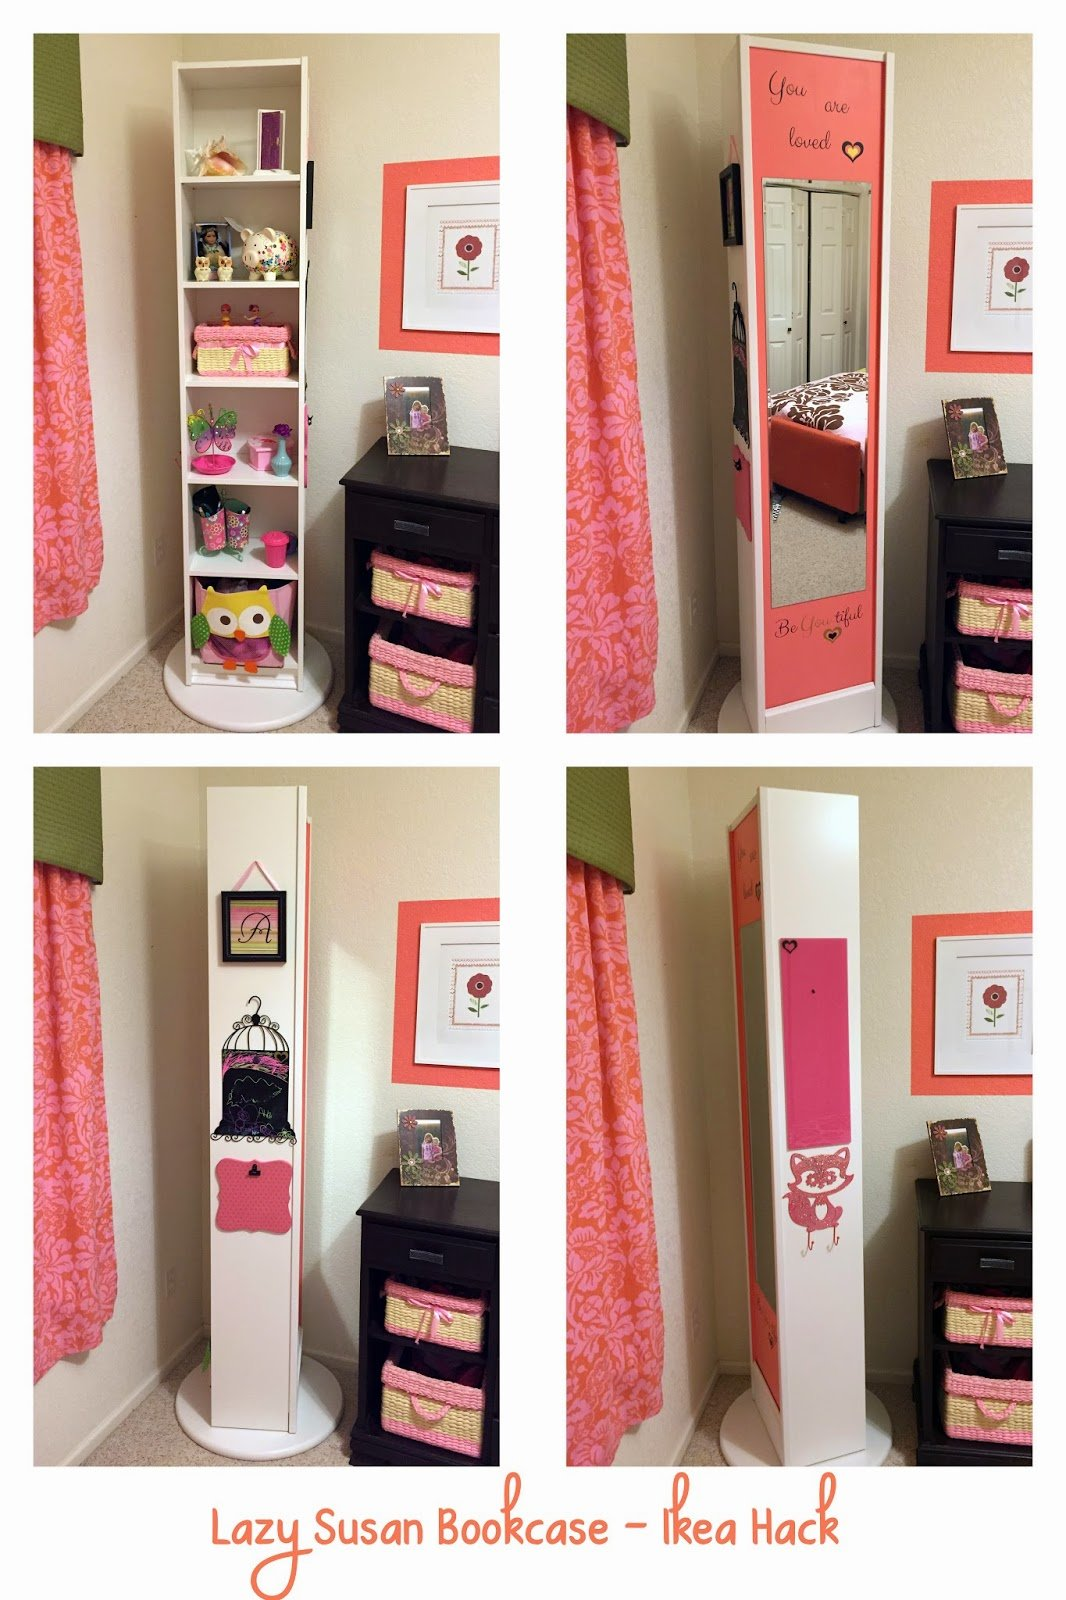 Best Naughton Your Life Lazy Susan Bookcase Ikea Hack With Pictures